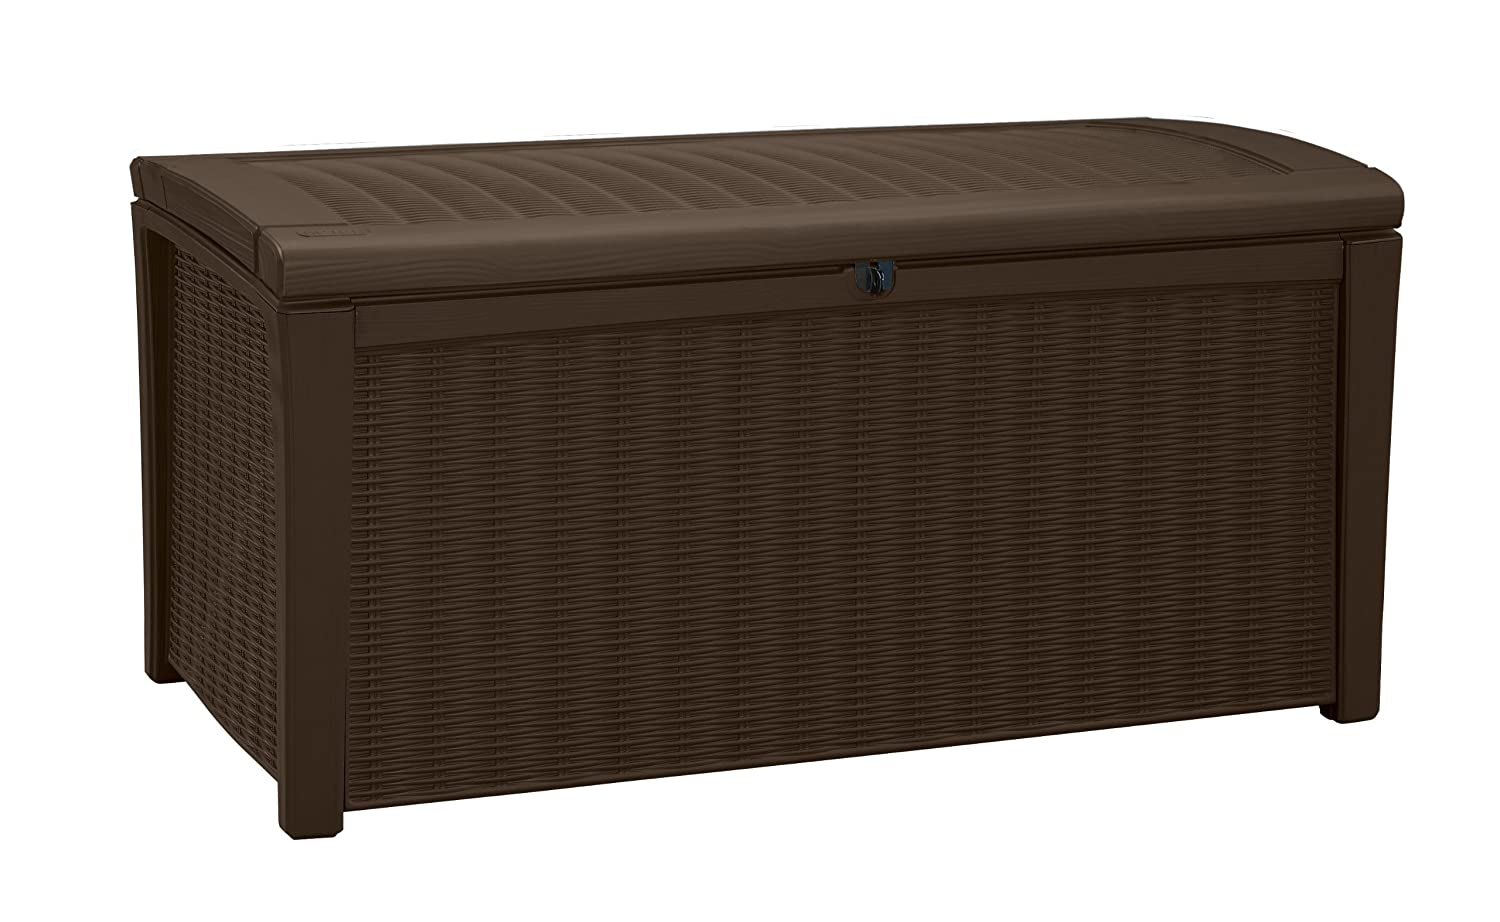 Keter Borneo 110 Gal. Plastic Outdoor Patio Storage Container Deck Box & Garden Bench, Brown 211359